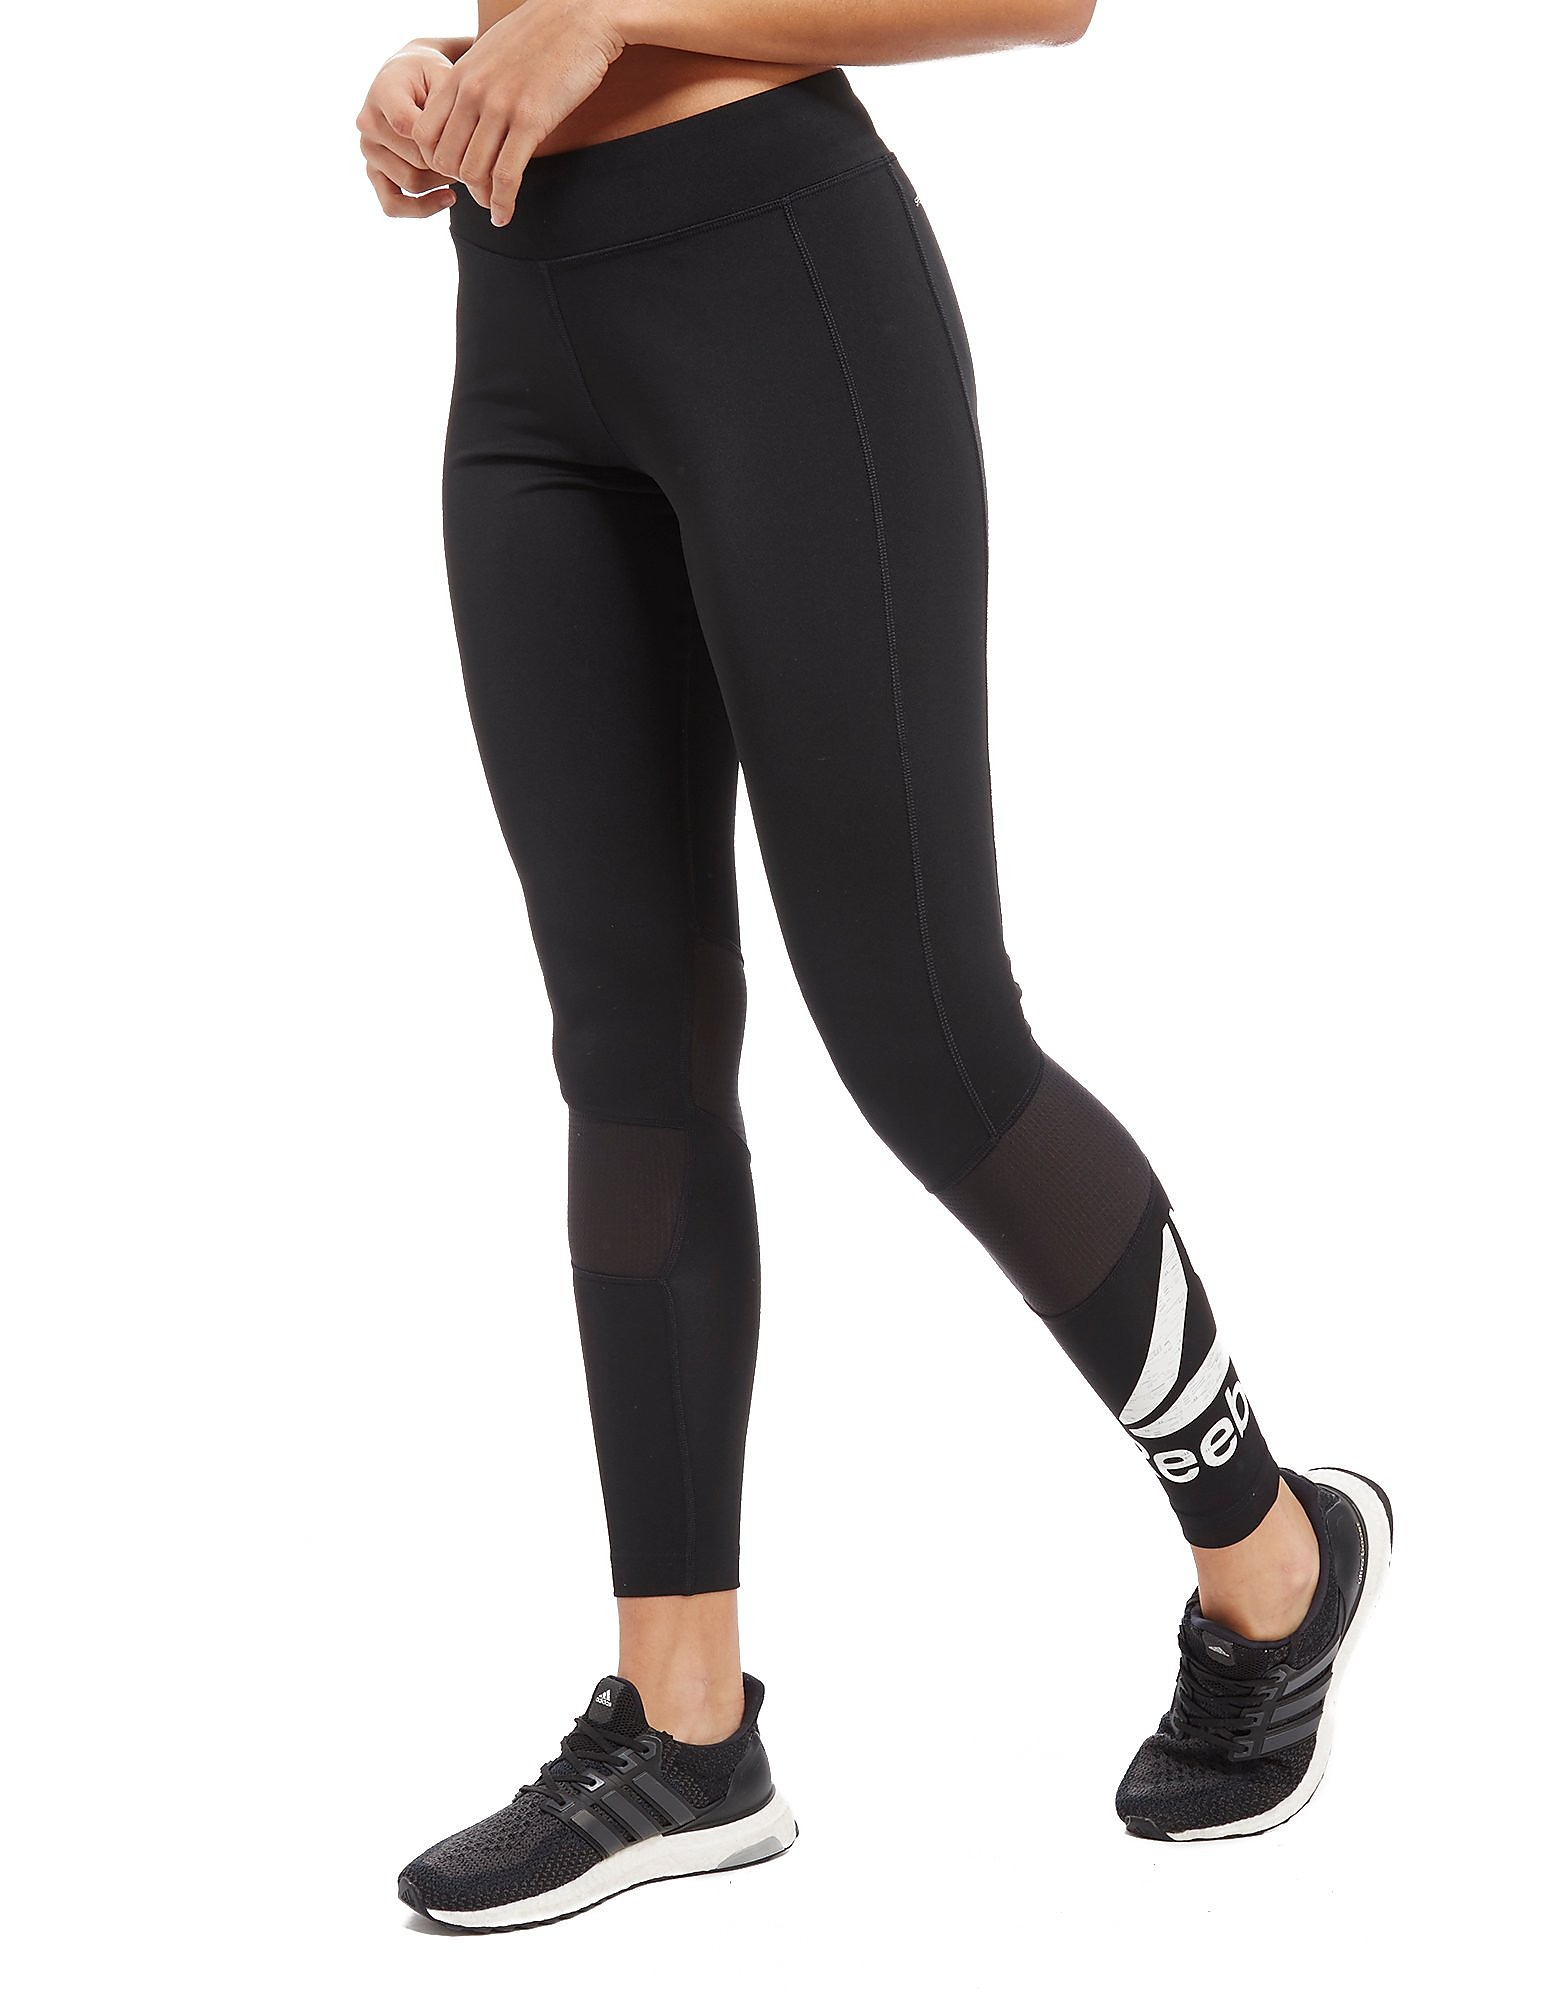 Reebok High Waisted Leggings